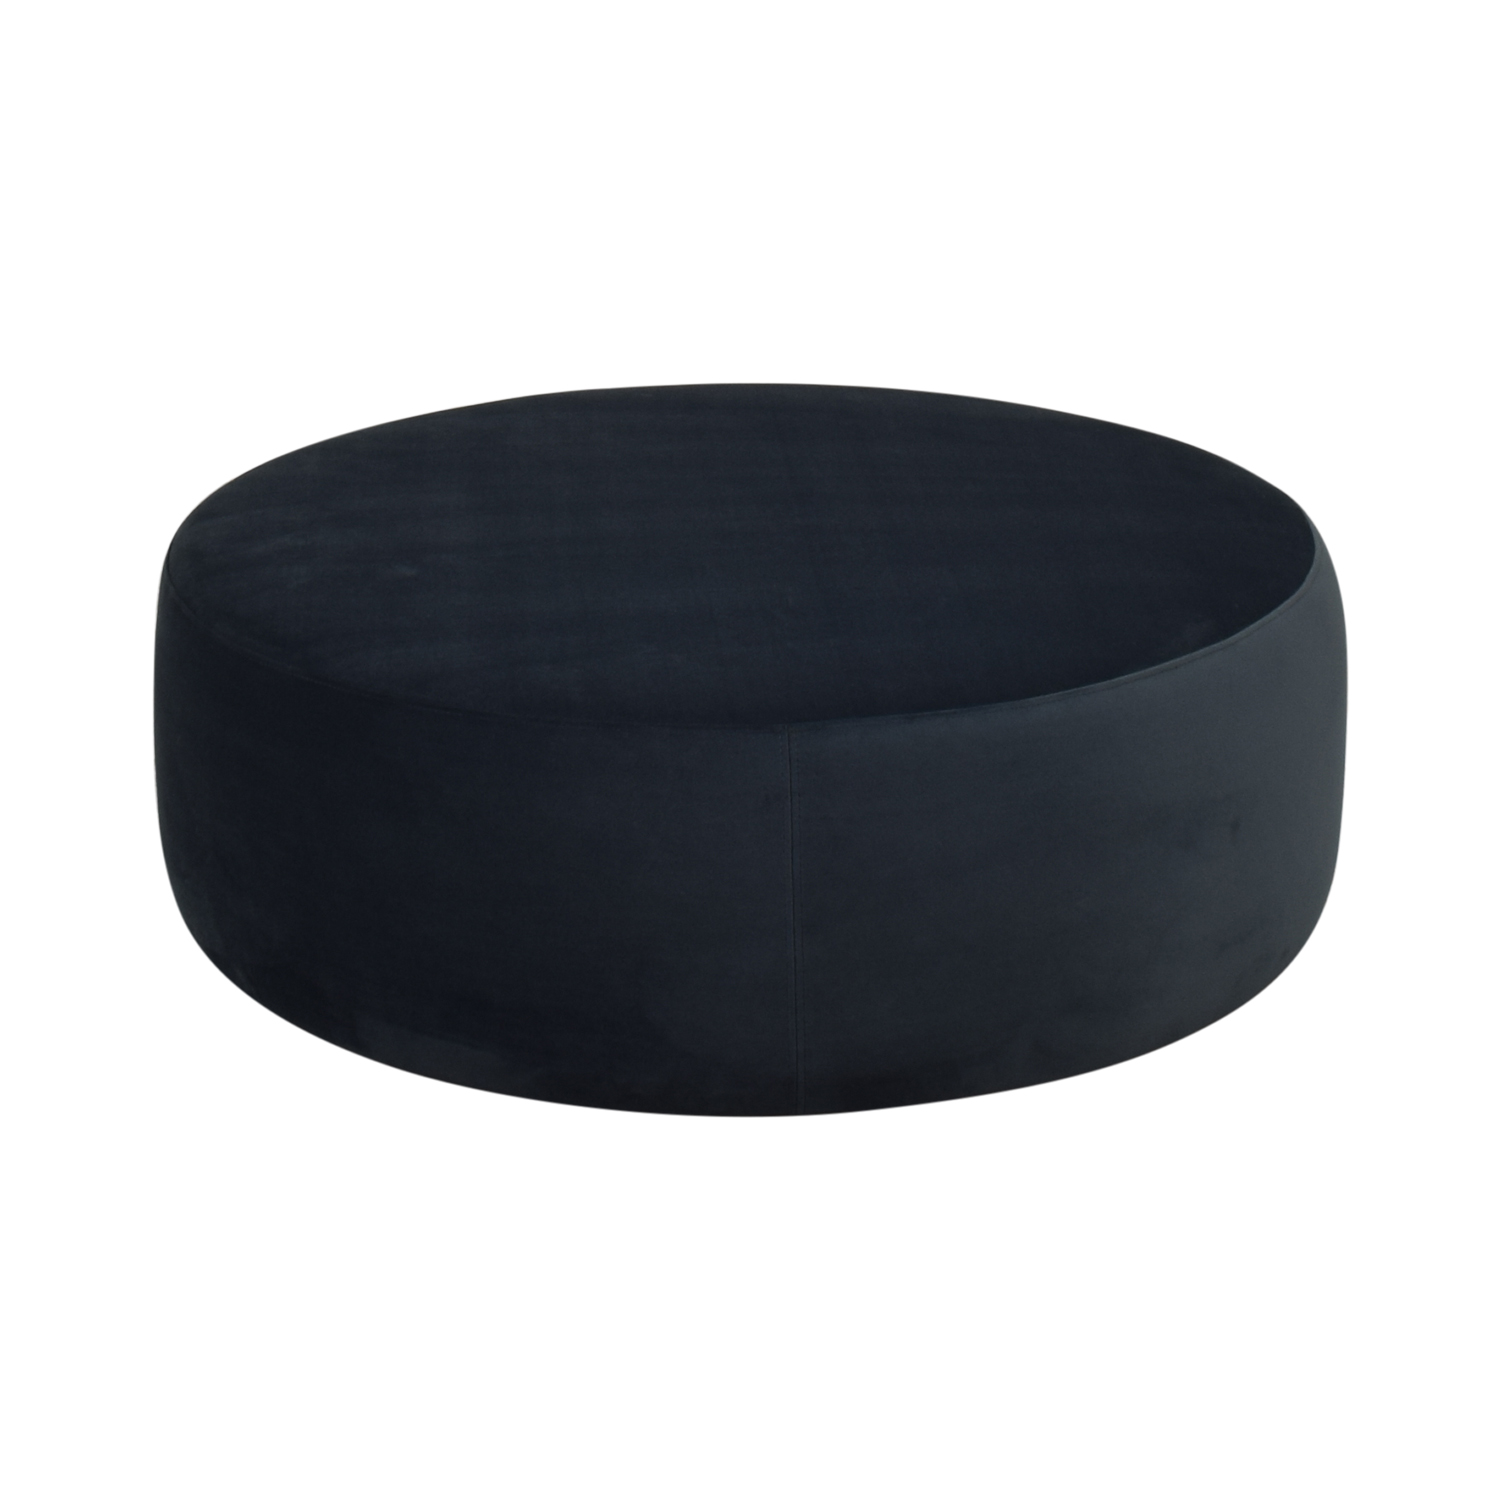 Wayfair Wayfair Ariel Pouf Ottomans